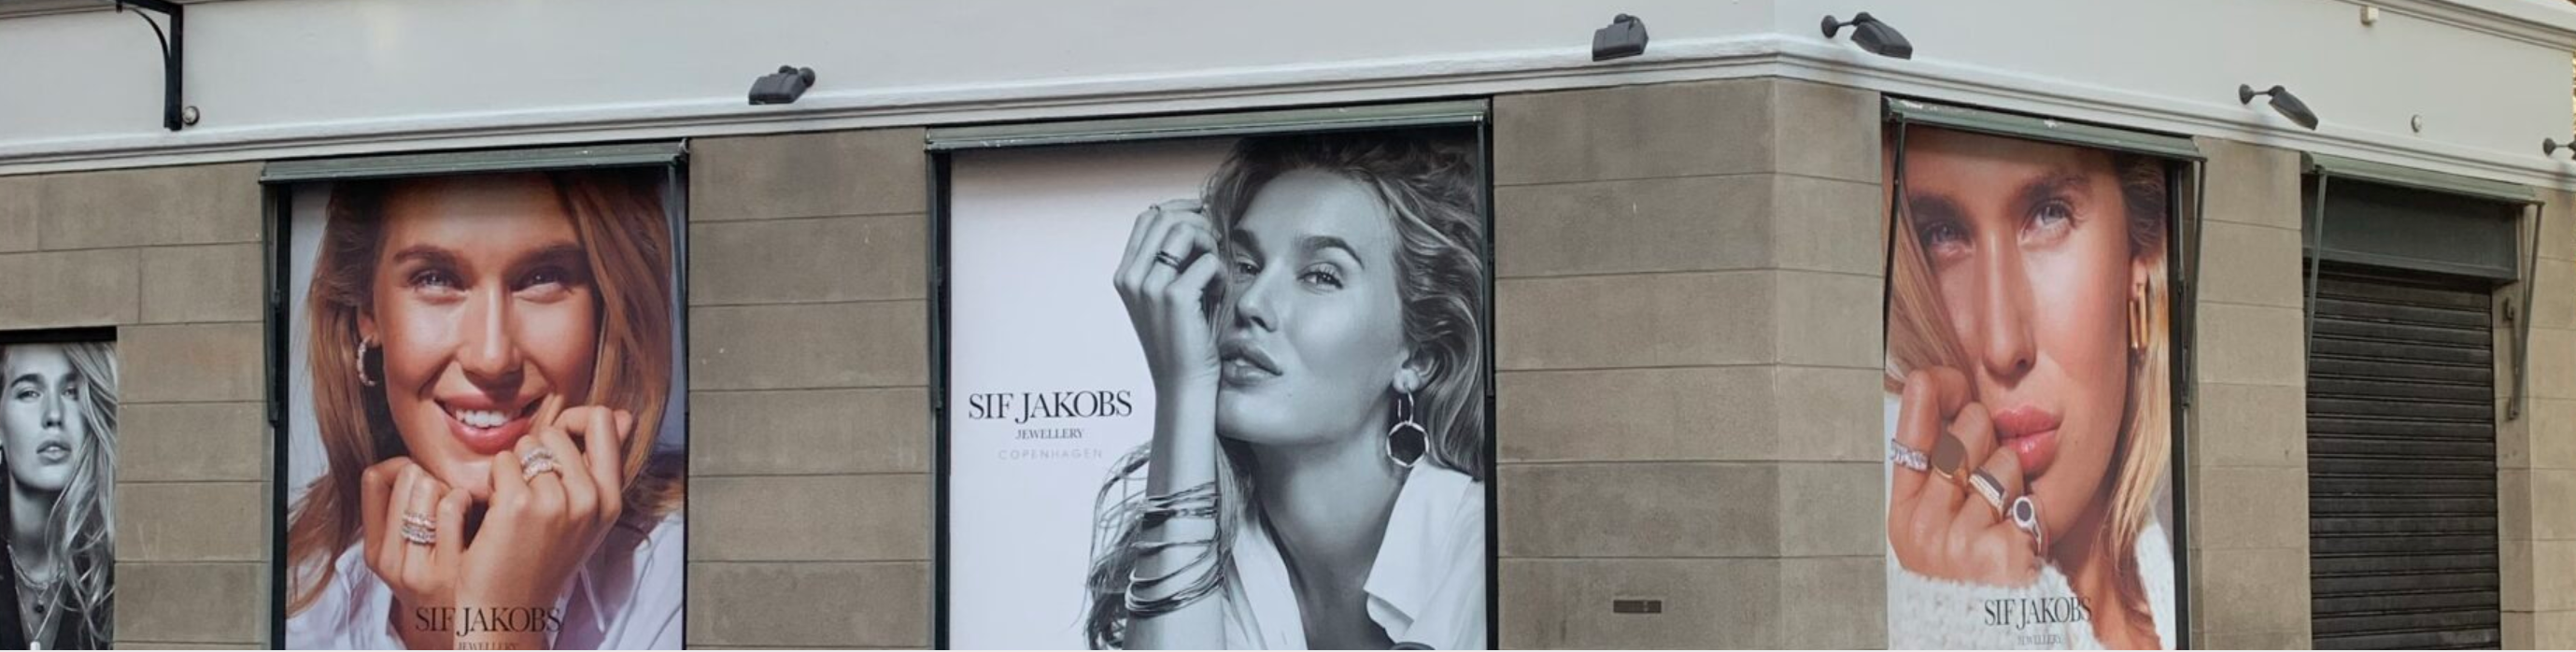 Sif Jakobs Jewellery Flagship store